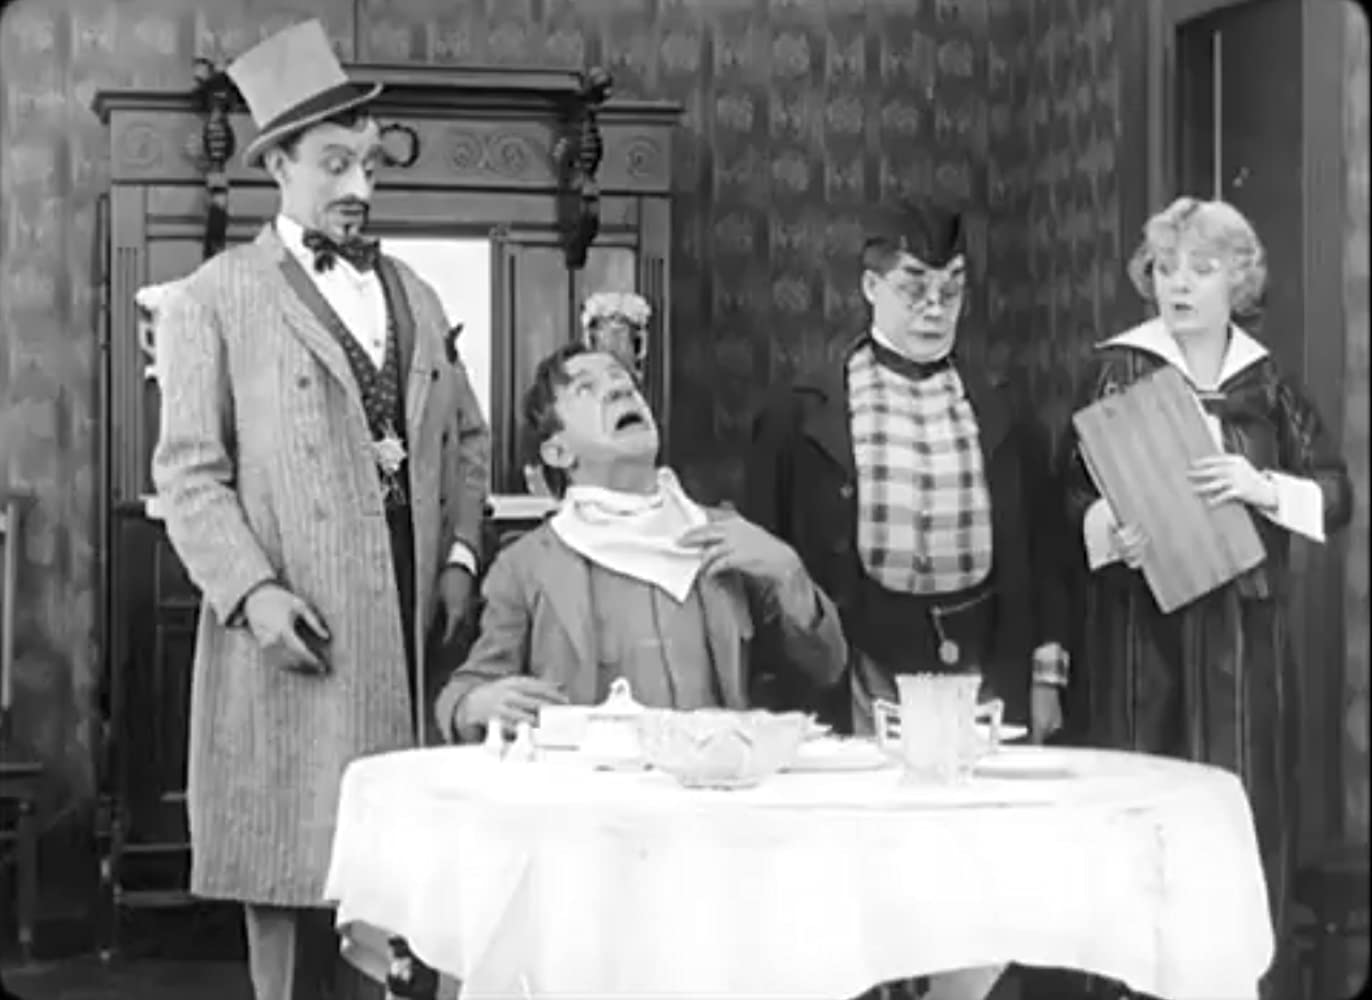 Dan Crimmins, H.H. McCullum, and Harry Watson in Just Imagination (1916)